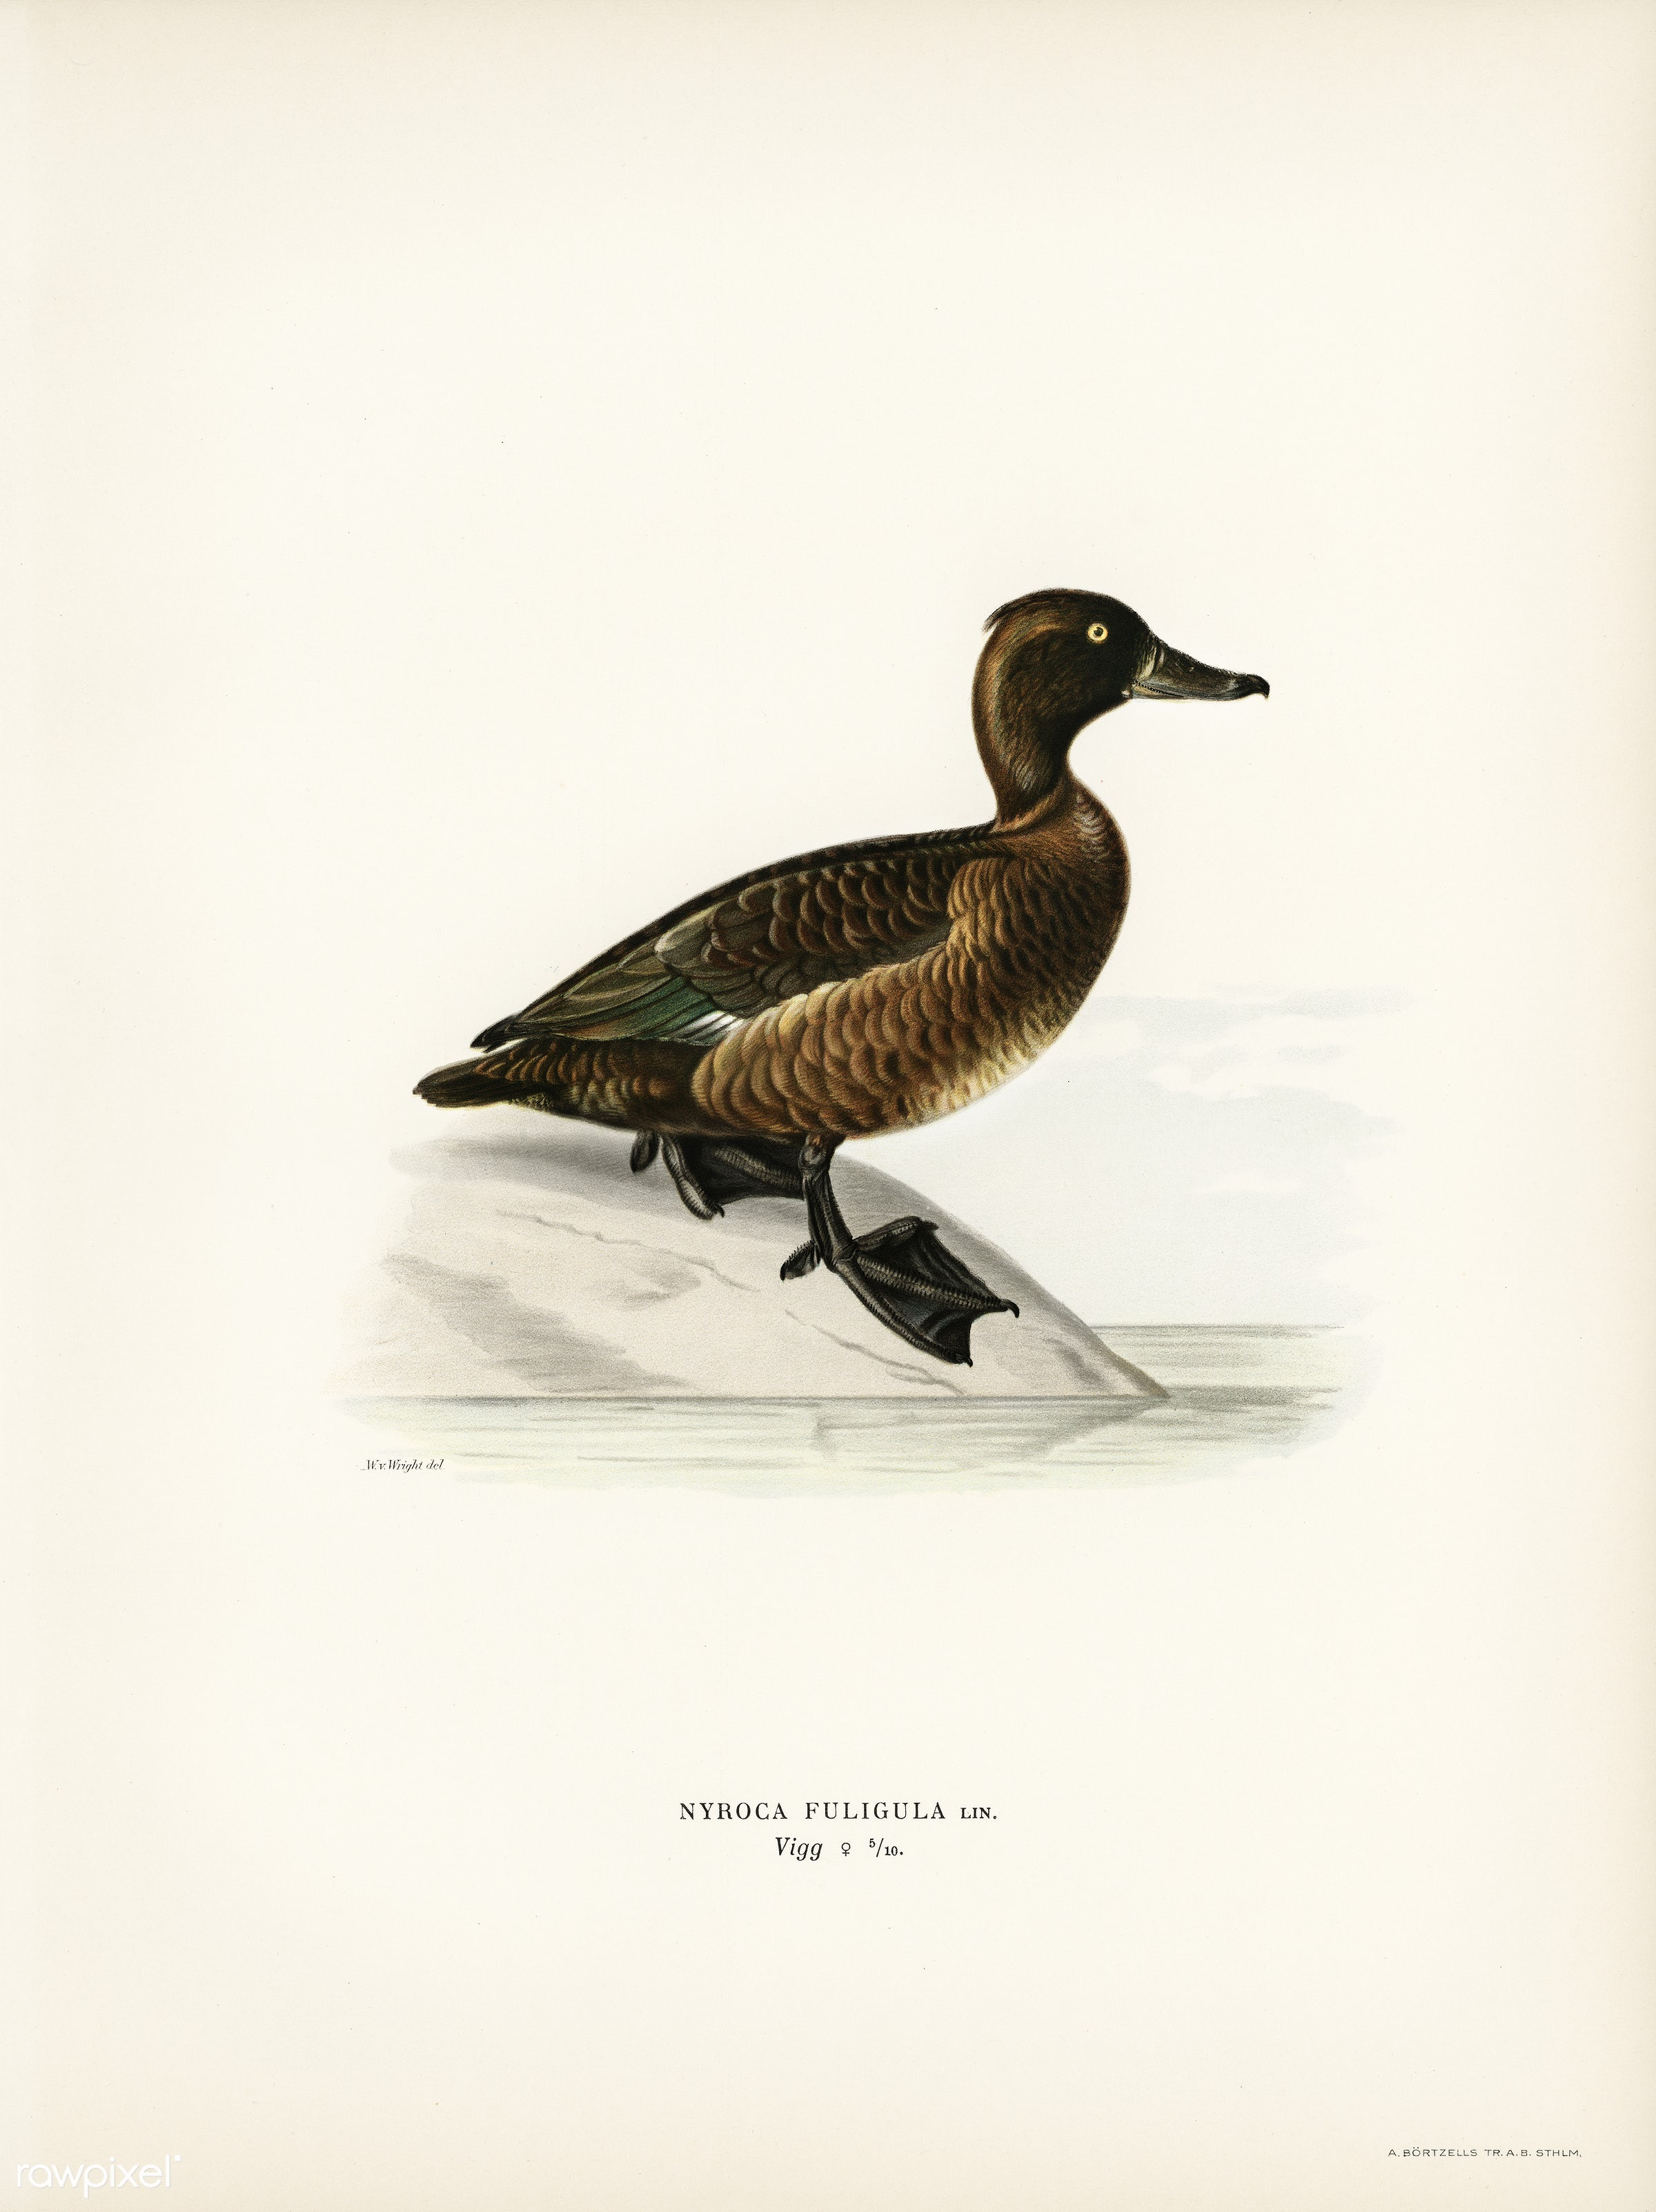 Ferruginous duck female (Nyroca fuligule) illustrated by the von Wright brothers. Digitally enhanced from our own 1929 folio...